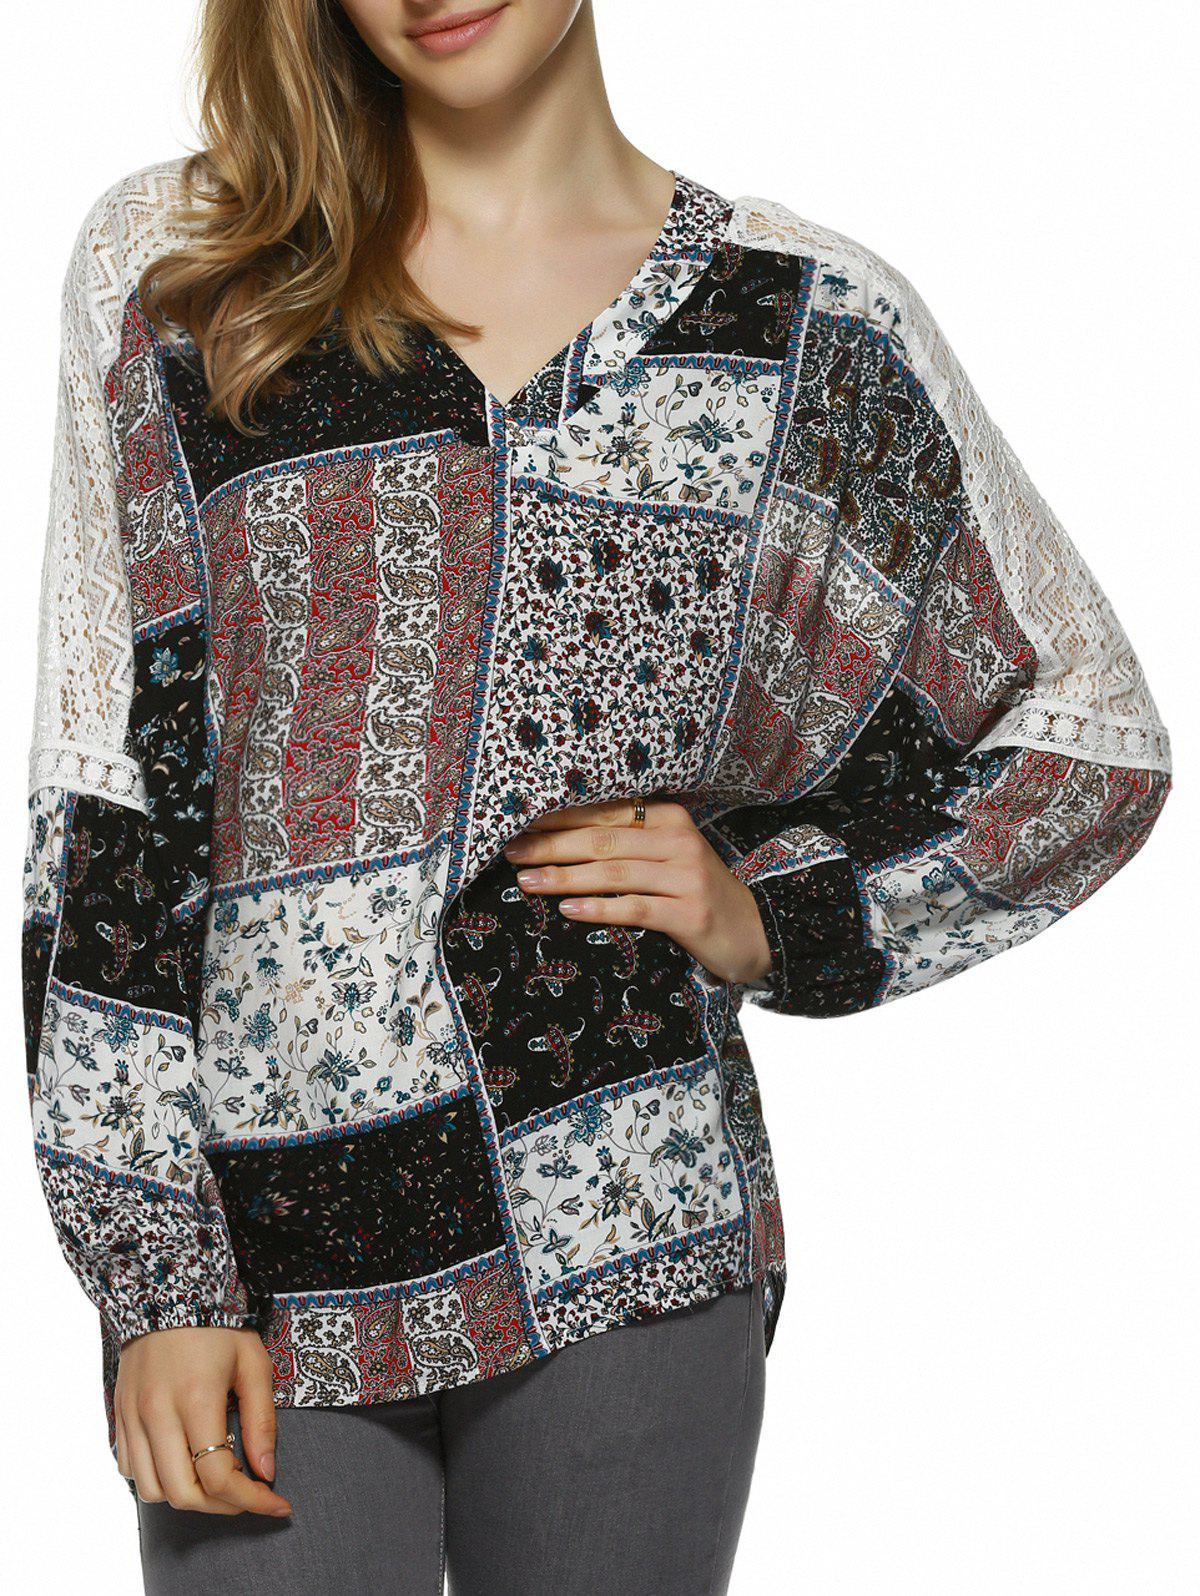 Ethnic Style Lace Splicing Blouse - COLORMIX S